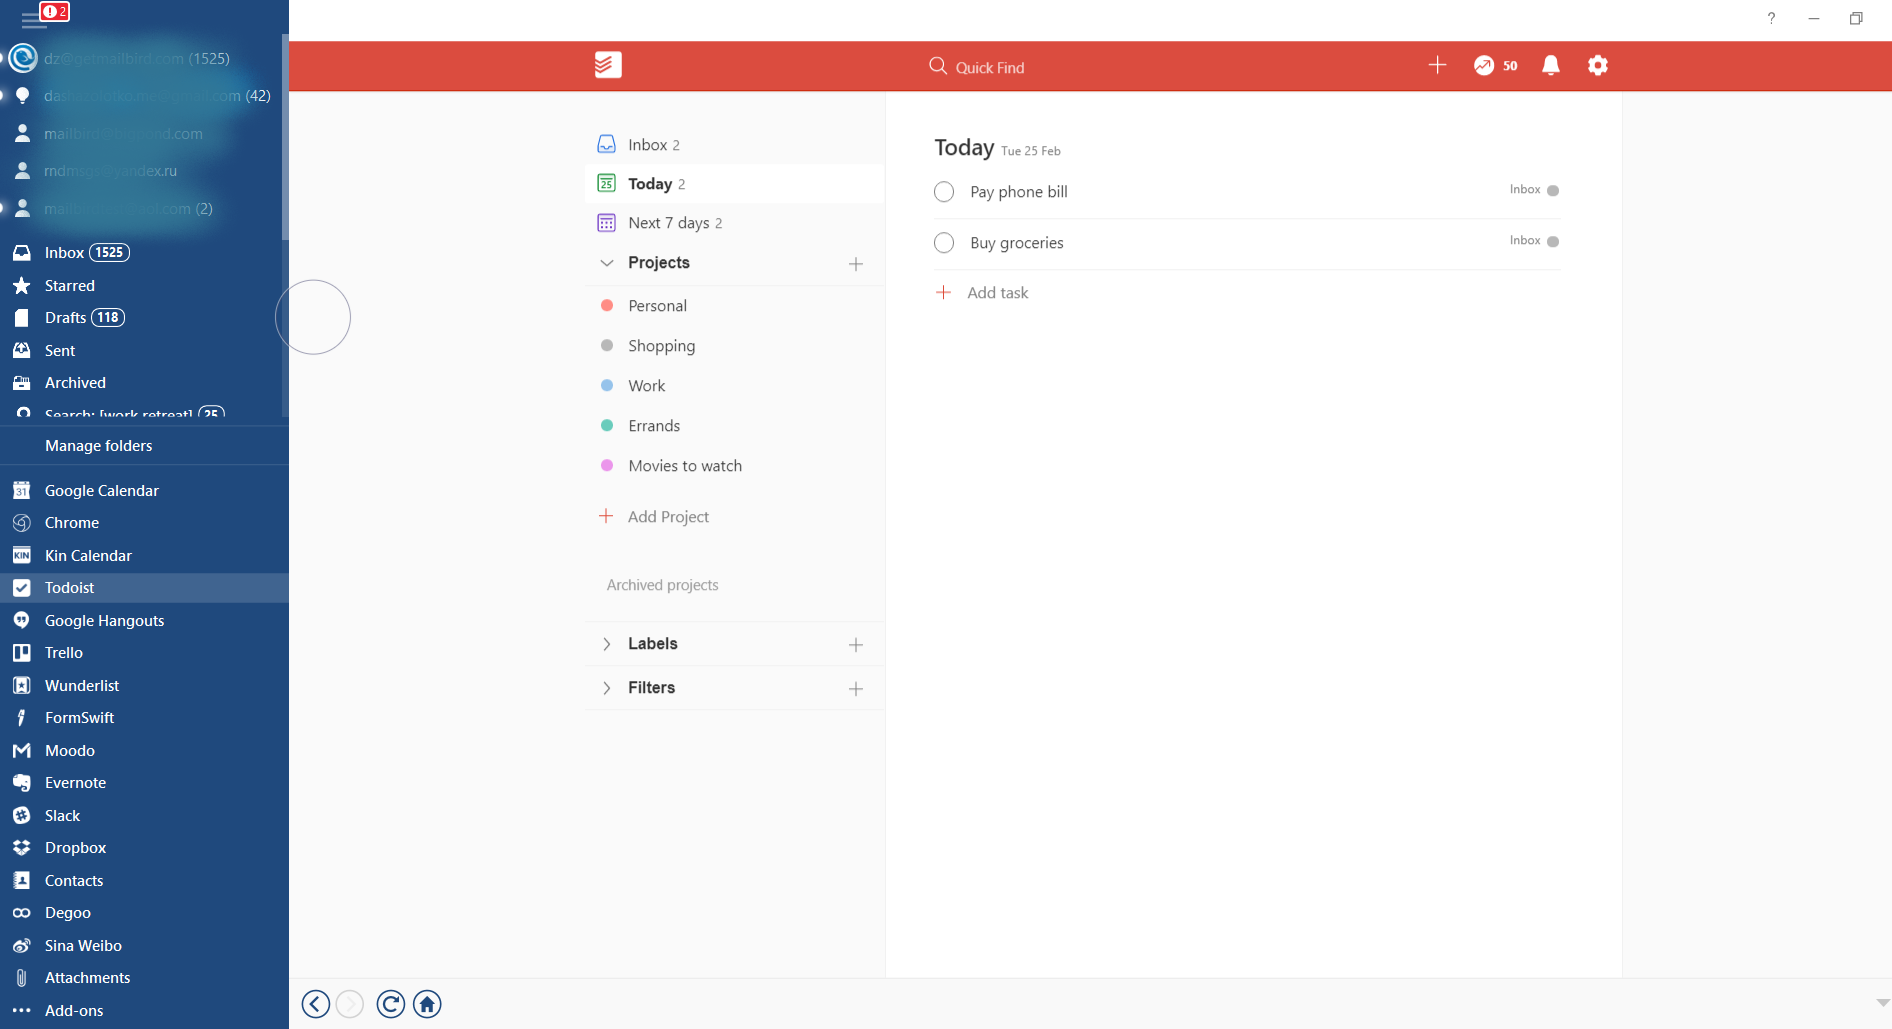 Email efficiency and effectiveness at work. Todoist